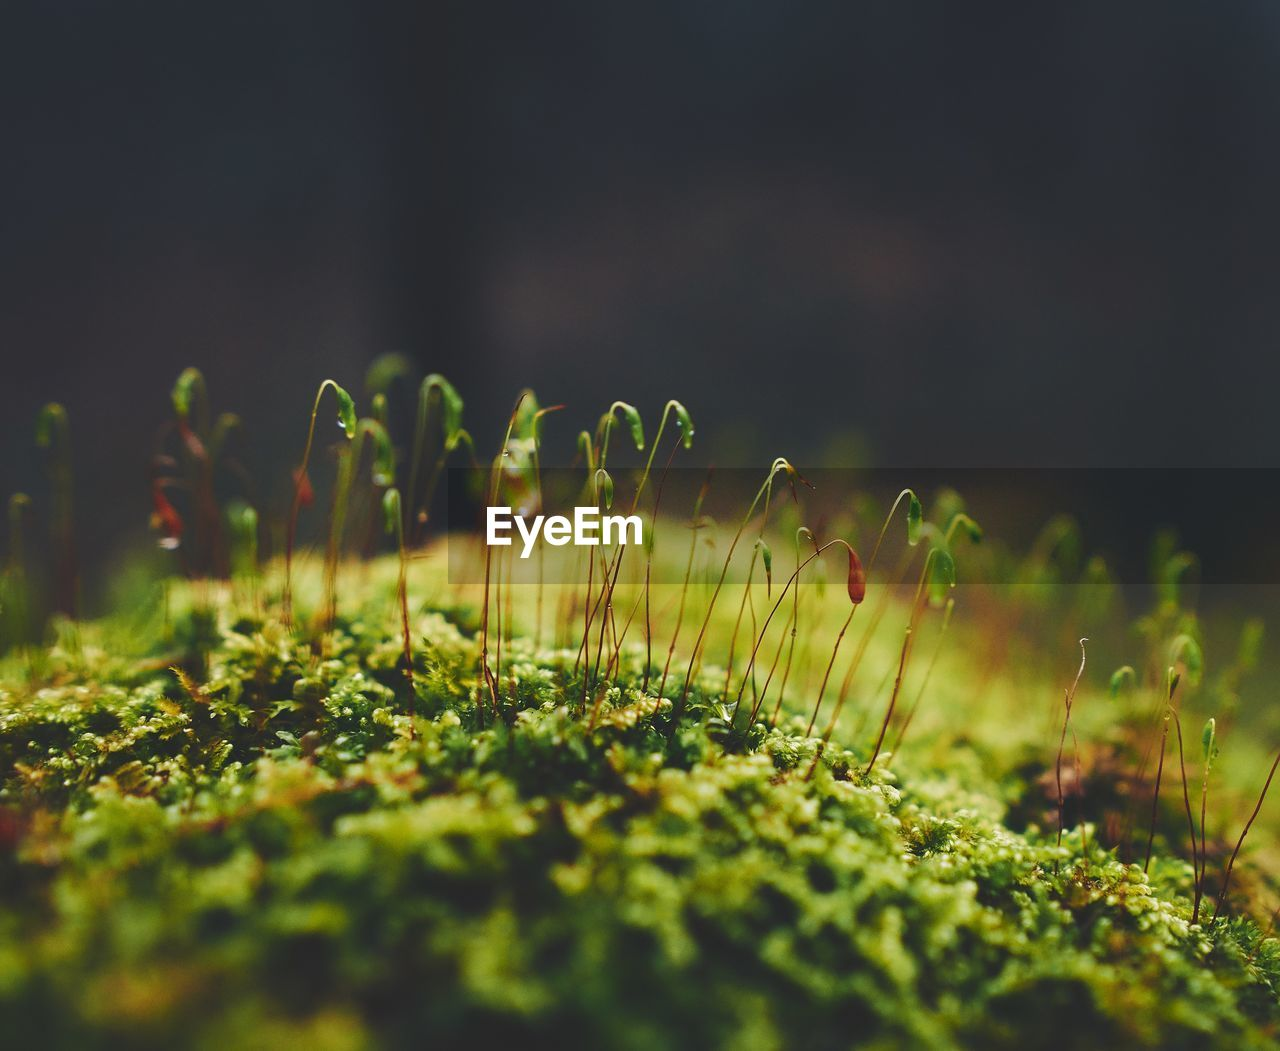 selective focus, plant, growth, land, nature, beauty in nature, green color, close-up, field, vulnerability, fragility, no people, tranquility, freshness, outdoors, day, grass, moss, flower, surface level